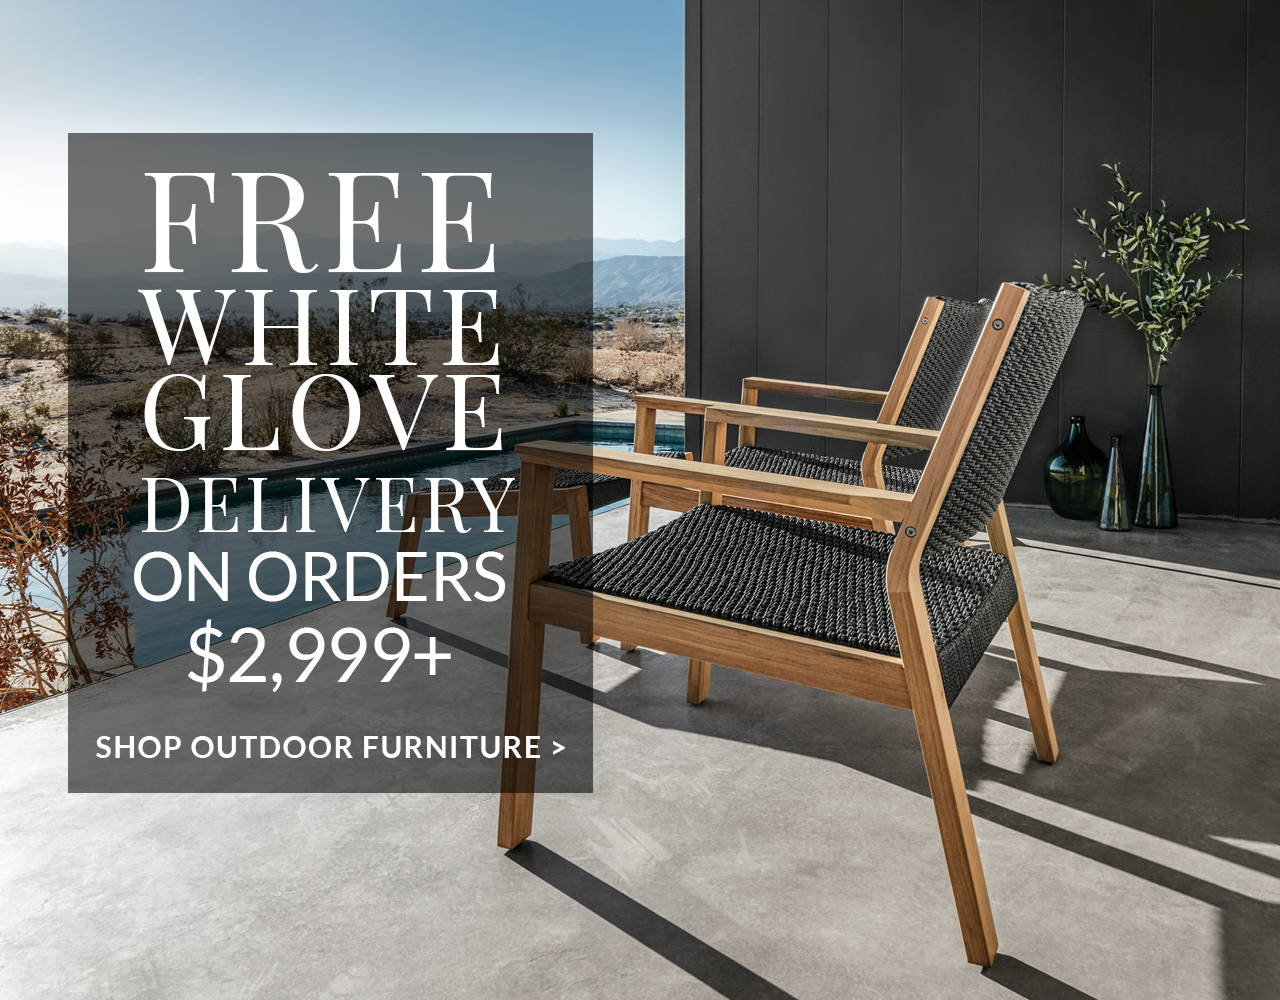 Free White Glove Delivery on Orders $2,999+